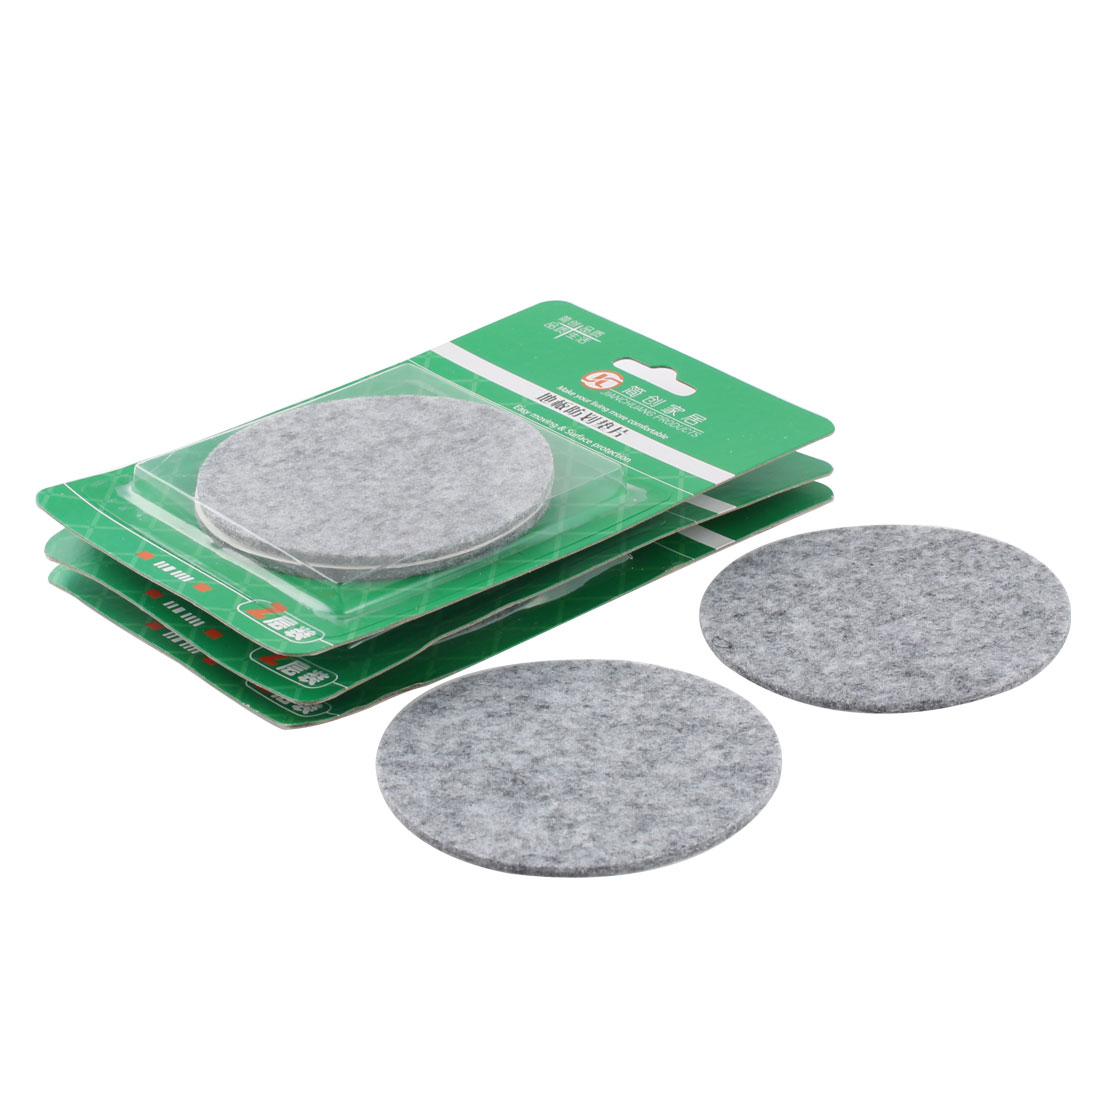 Table Chair Legs Protect Floor Furniture Felt Pads Cushions Mats Gray 85mm Dia 8pcs